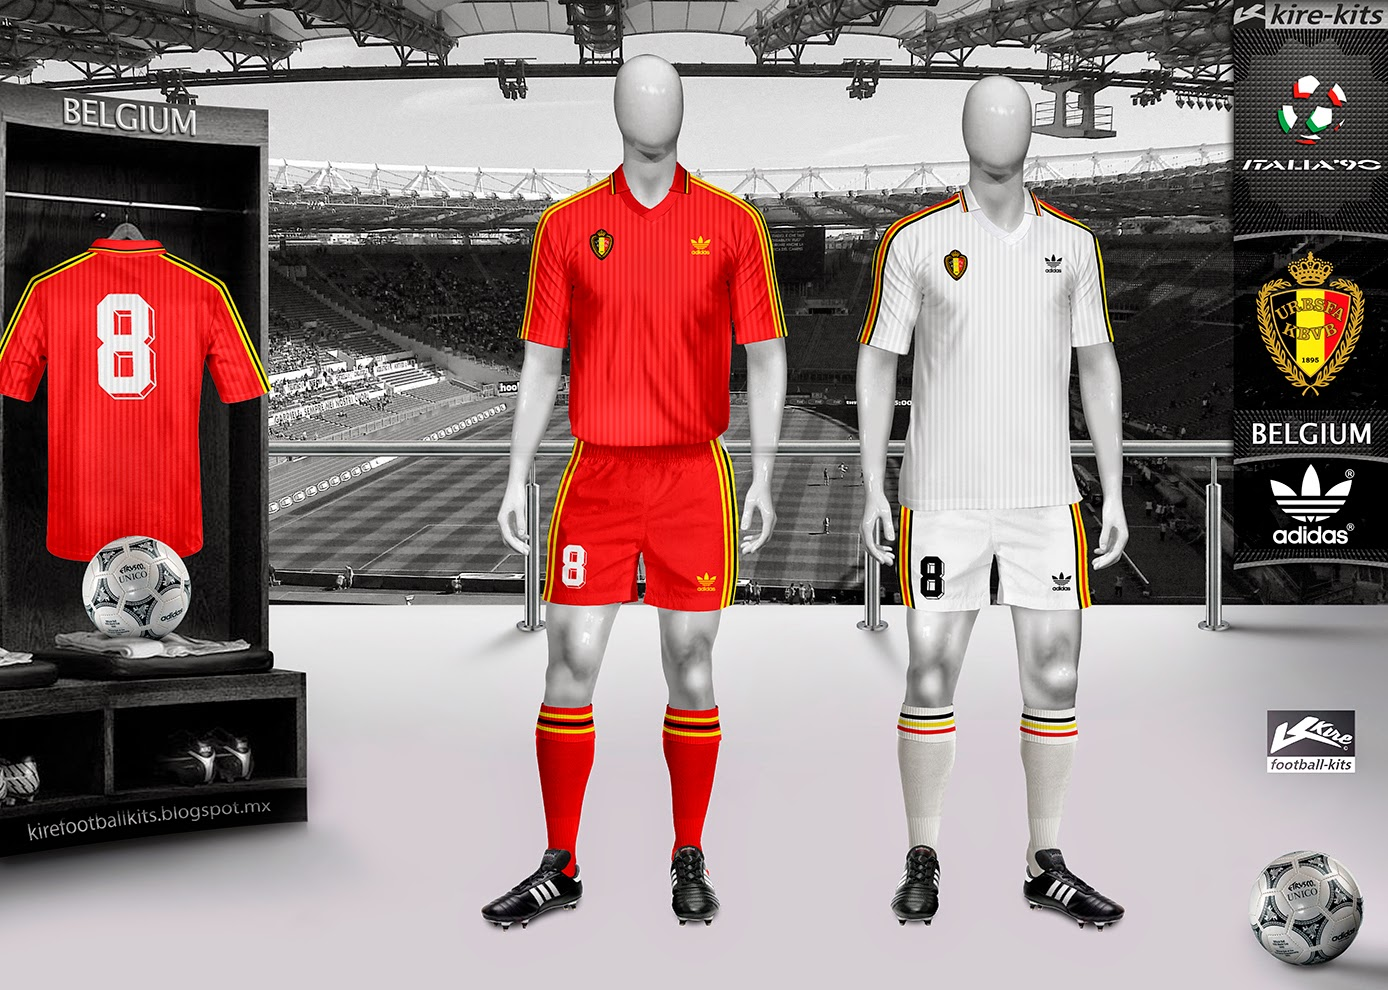 Belgium Home and Away Kits World Cup Italy 1990